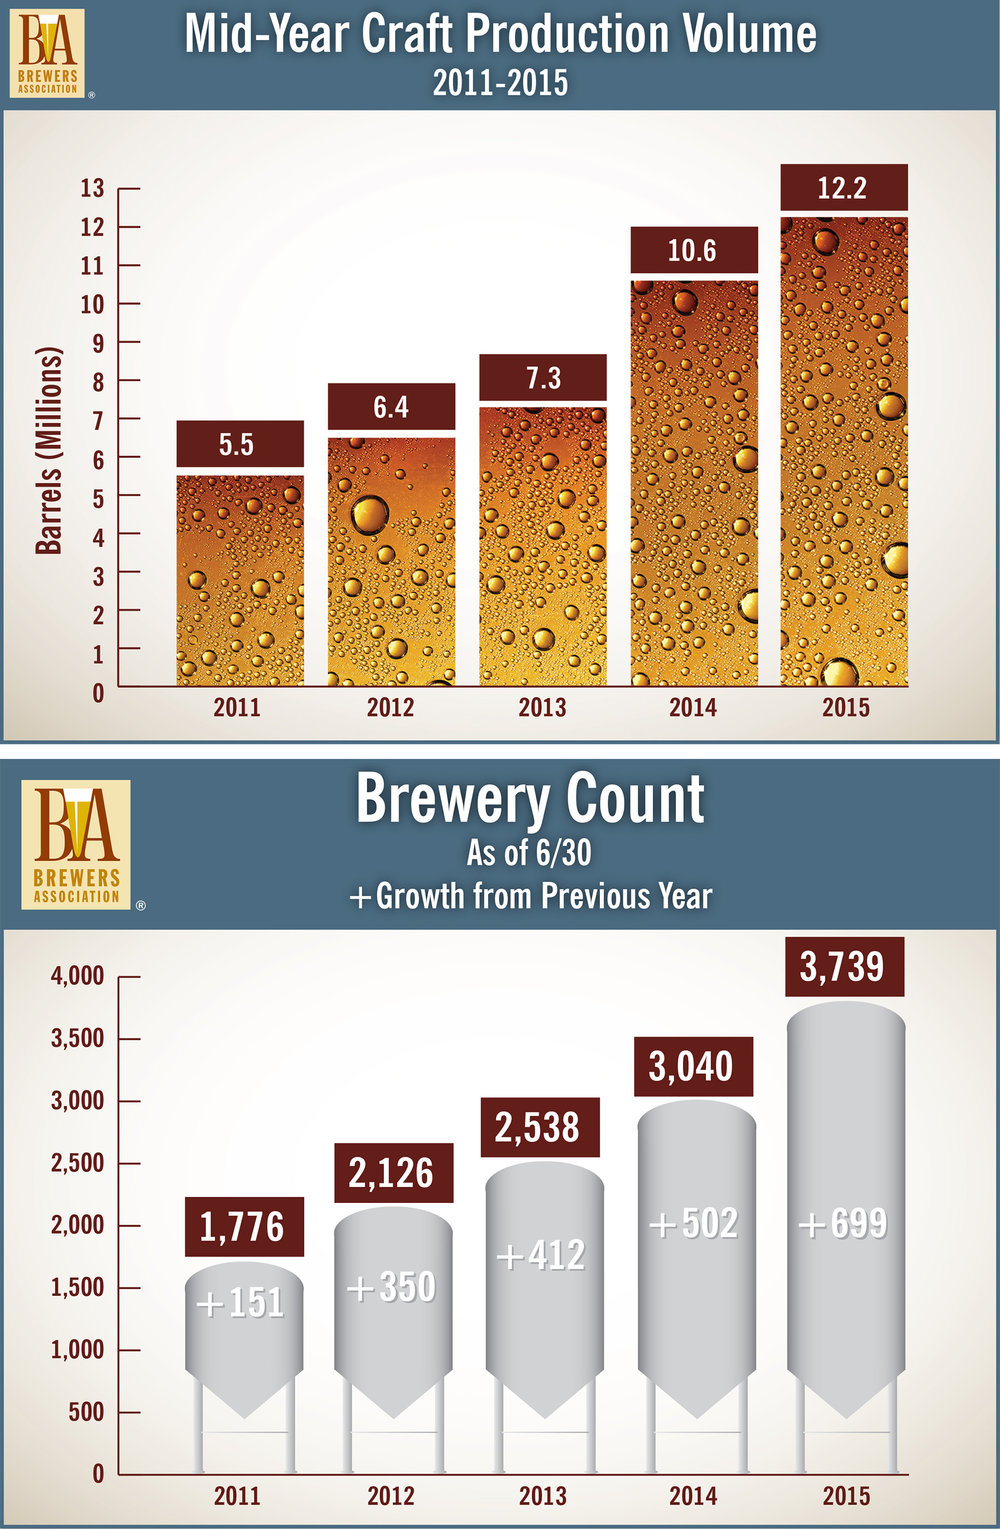 Craft Sales and Brewery Count Growth 2015.jpg